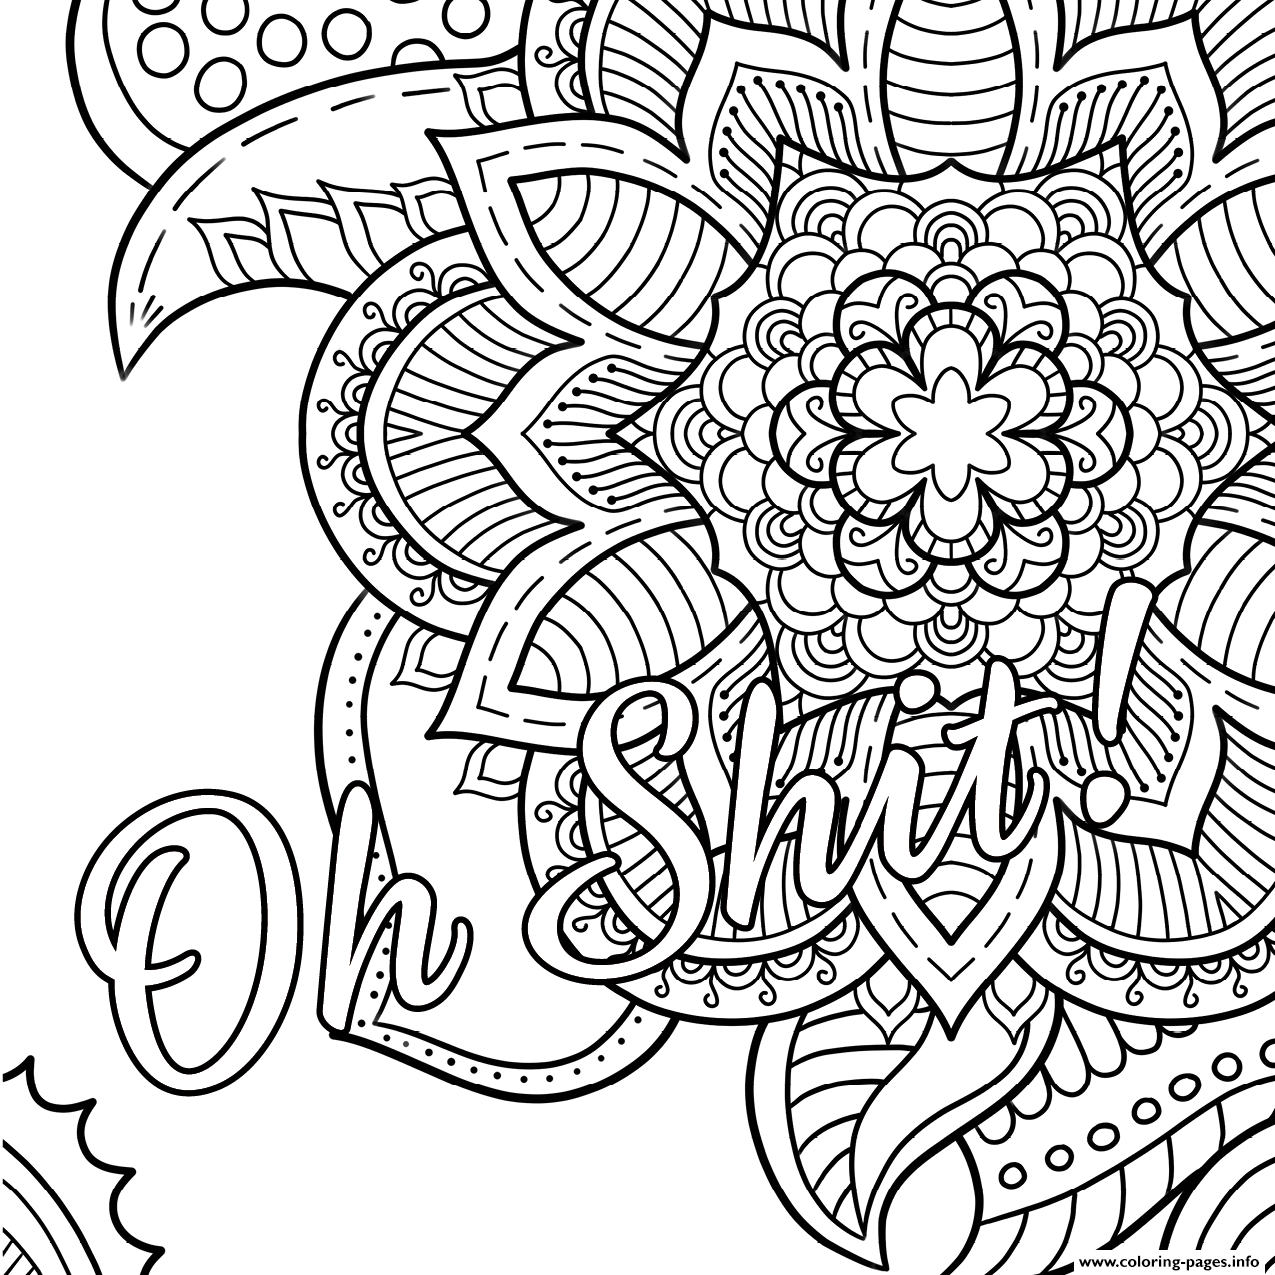 Oh Shit Word Doodle Coloring Pages Printable